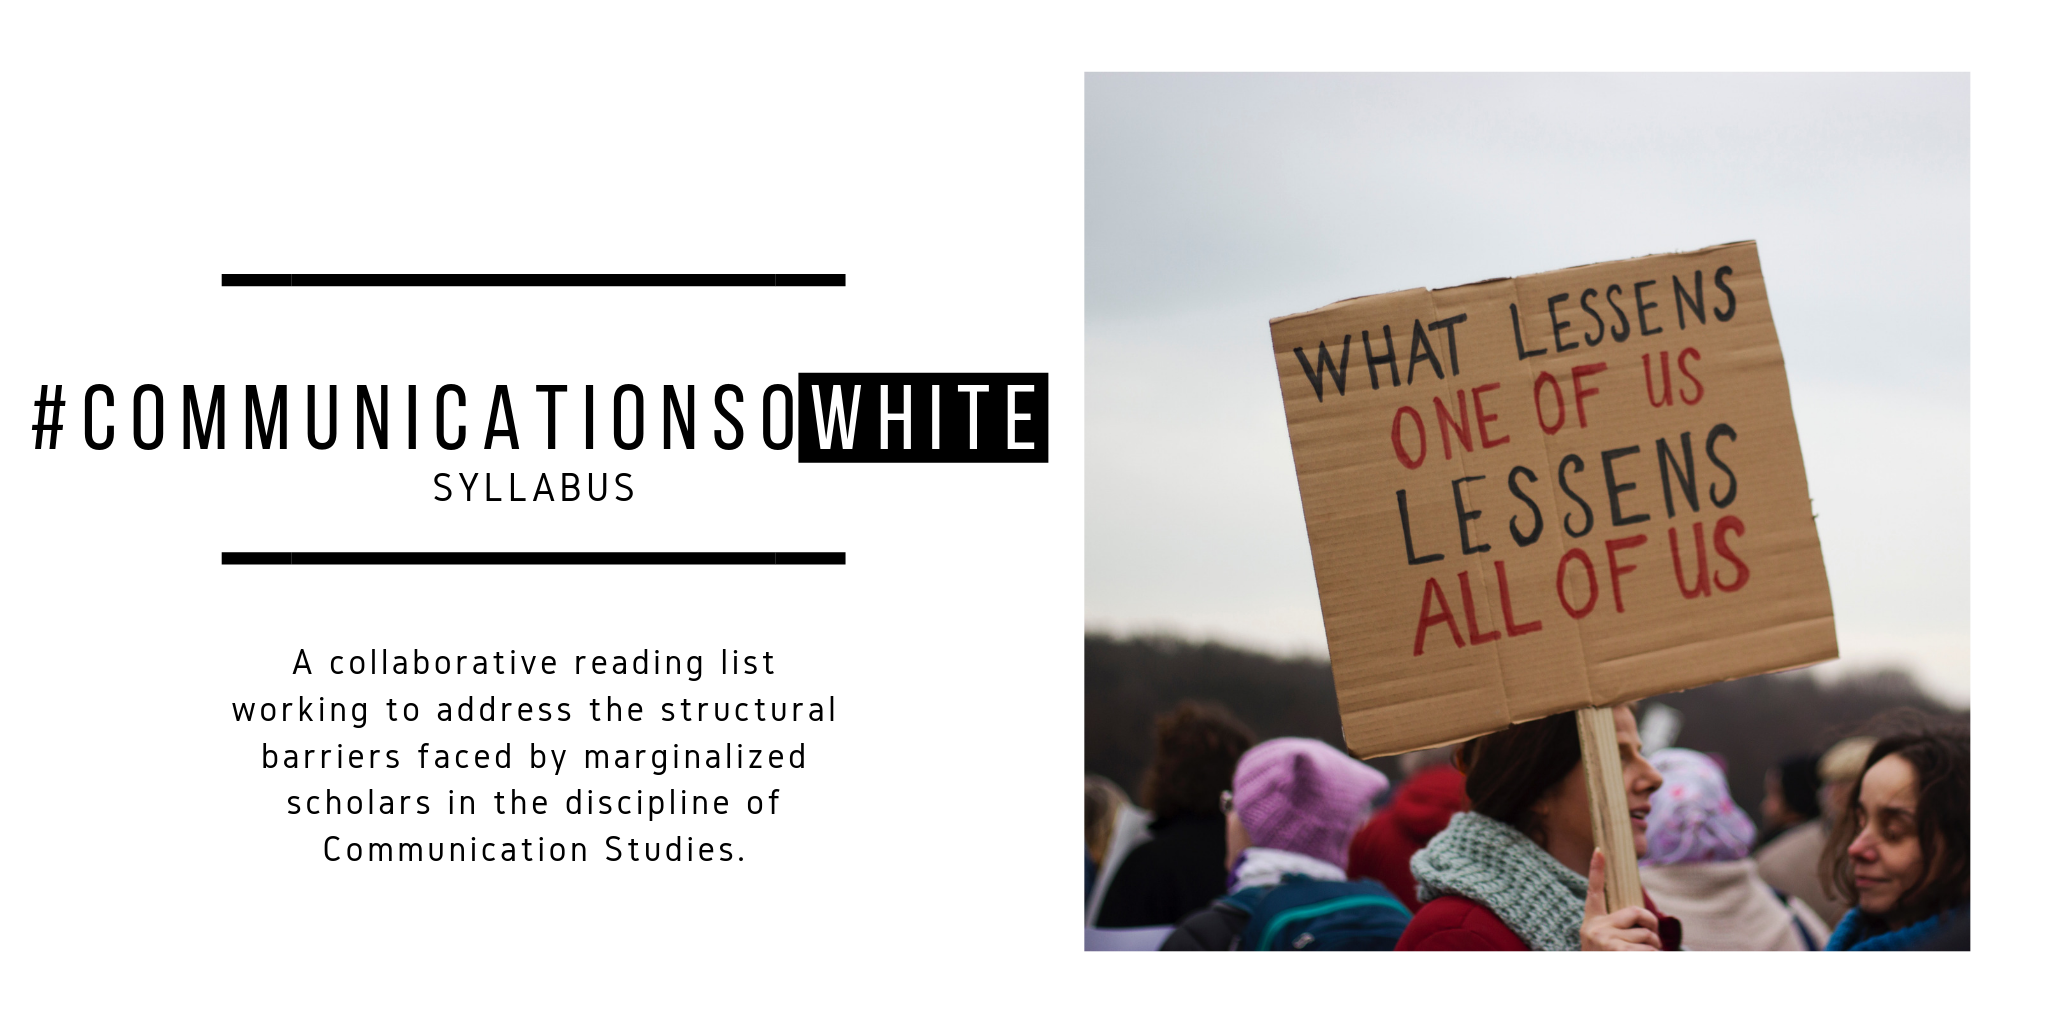 A collaborative reading list working to address the structural barriers faced by marginalized scholars in the discipline of Communication Studies.